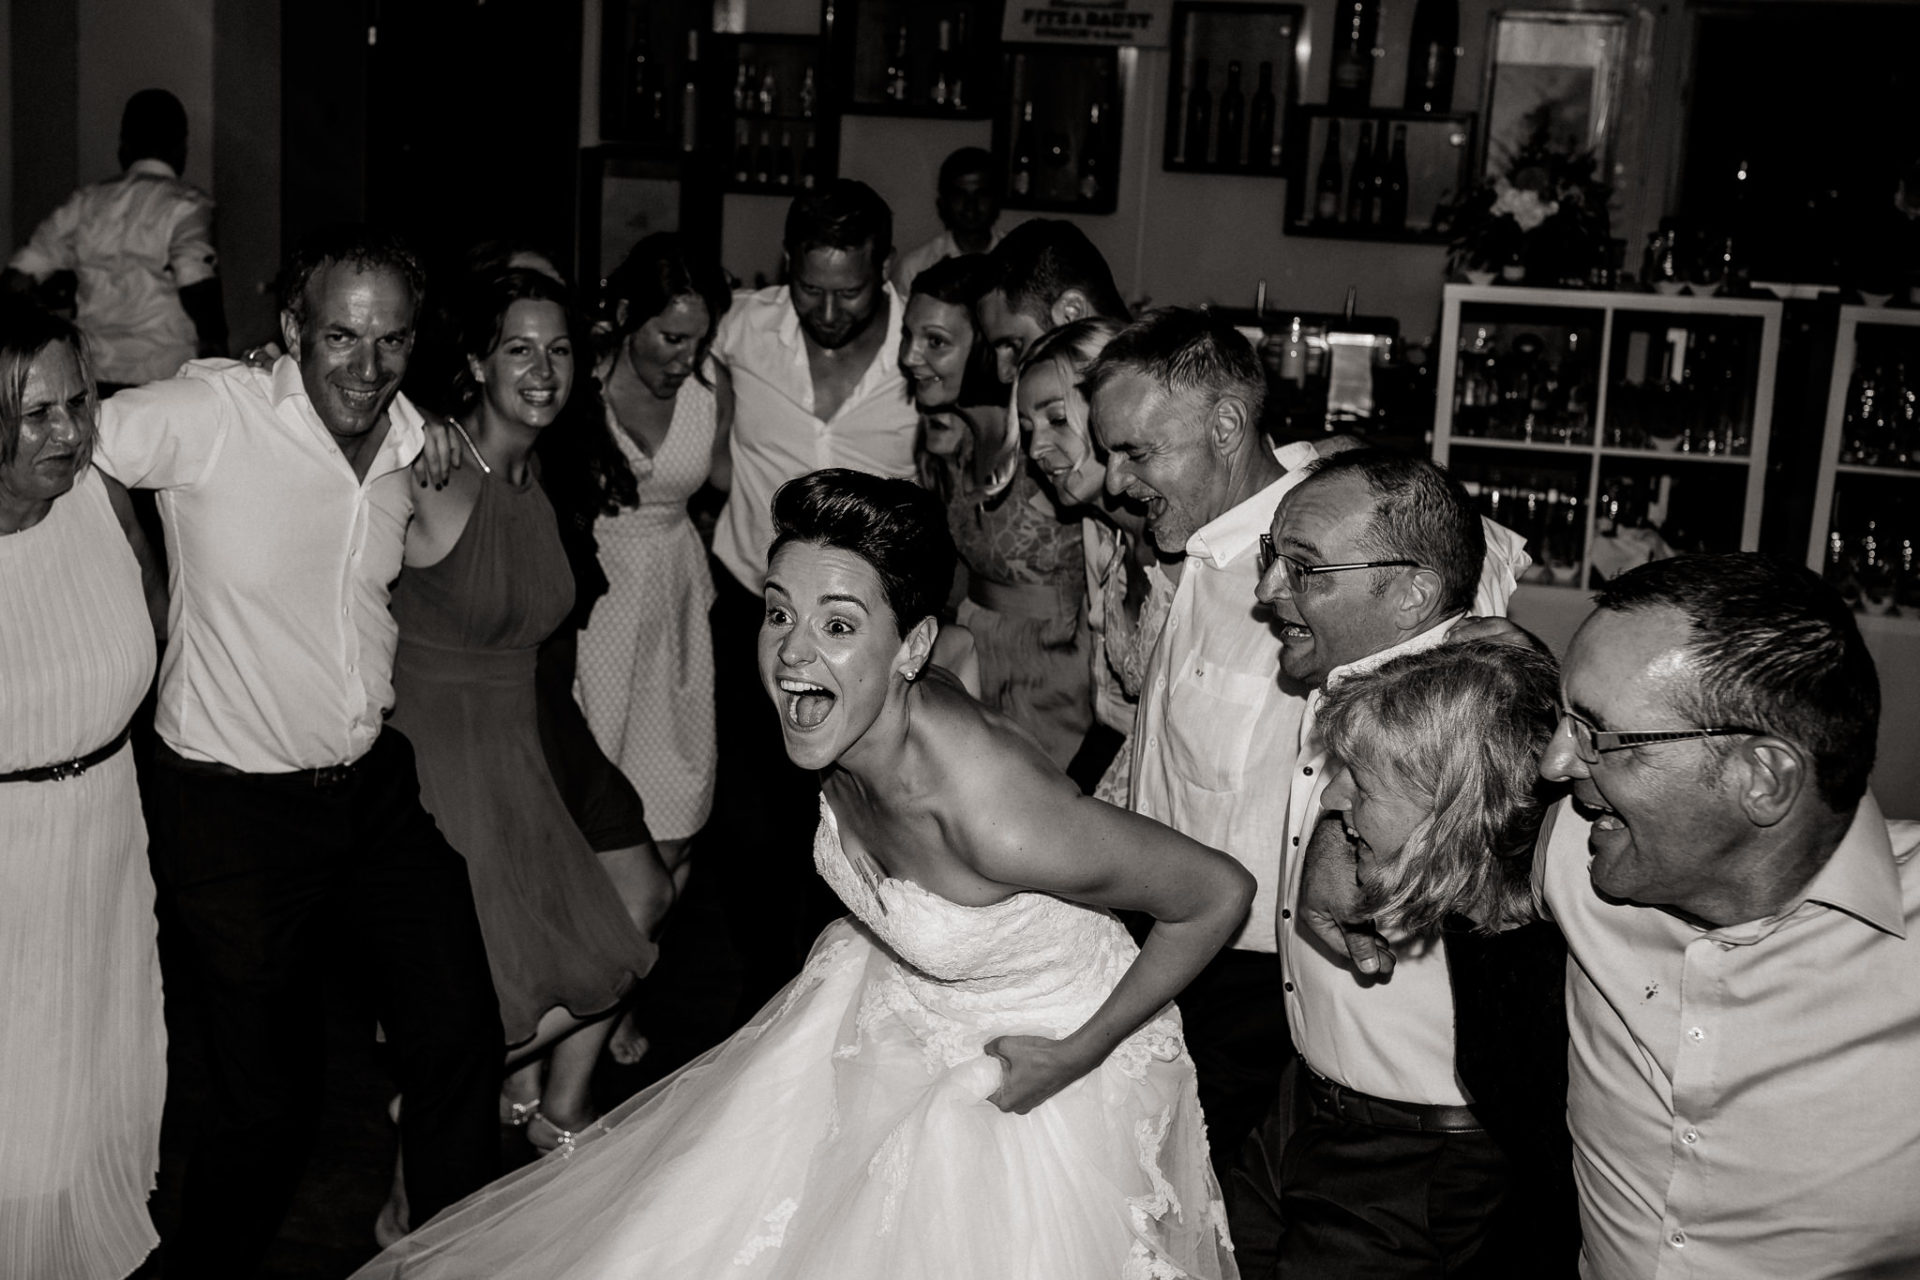 vineyard wedding germany-weingut fitz ritter wedding photographer pfalz party bride dancing